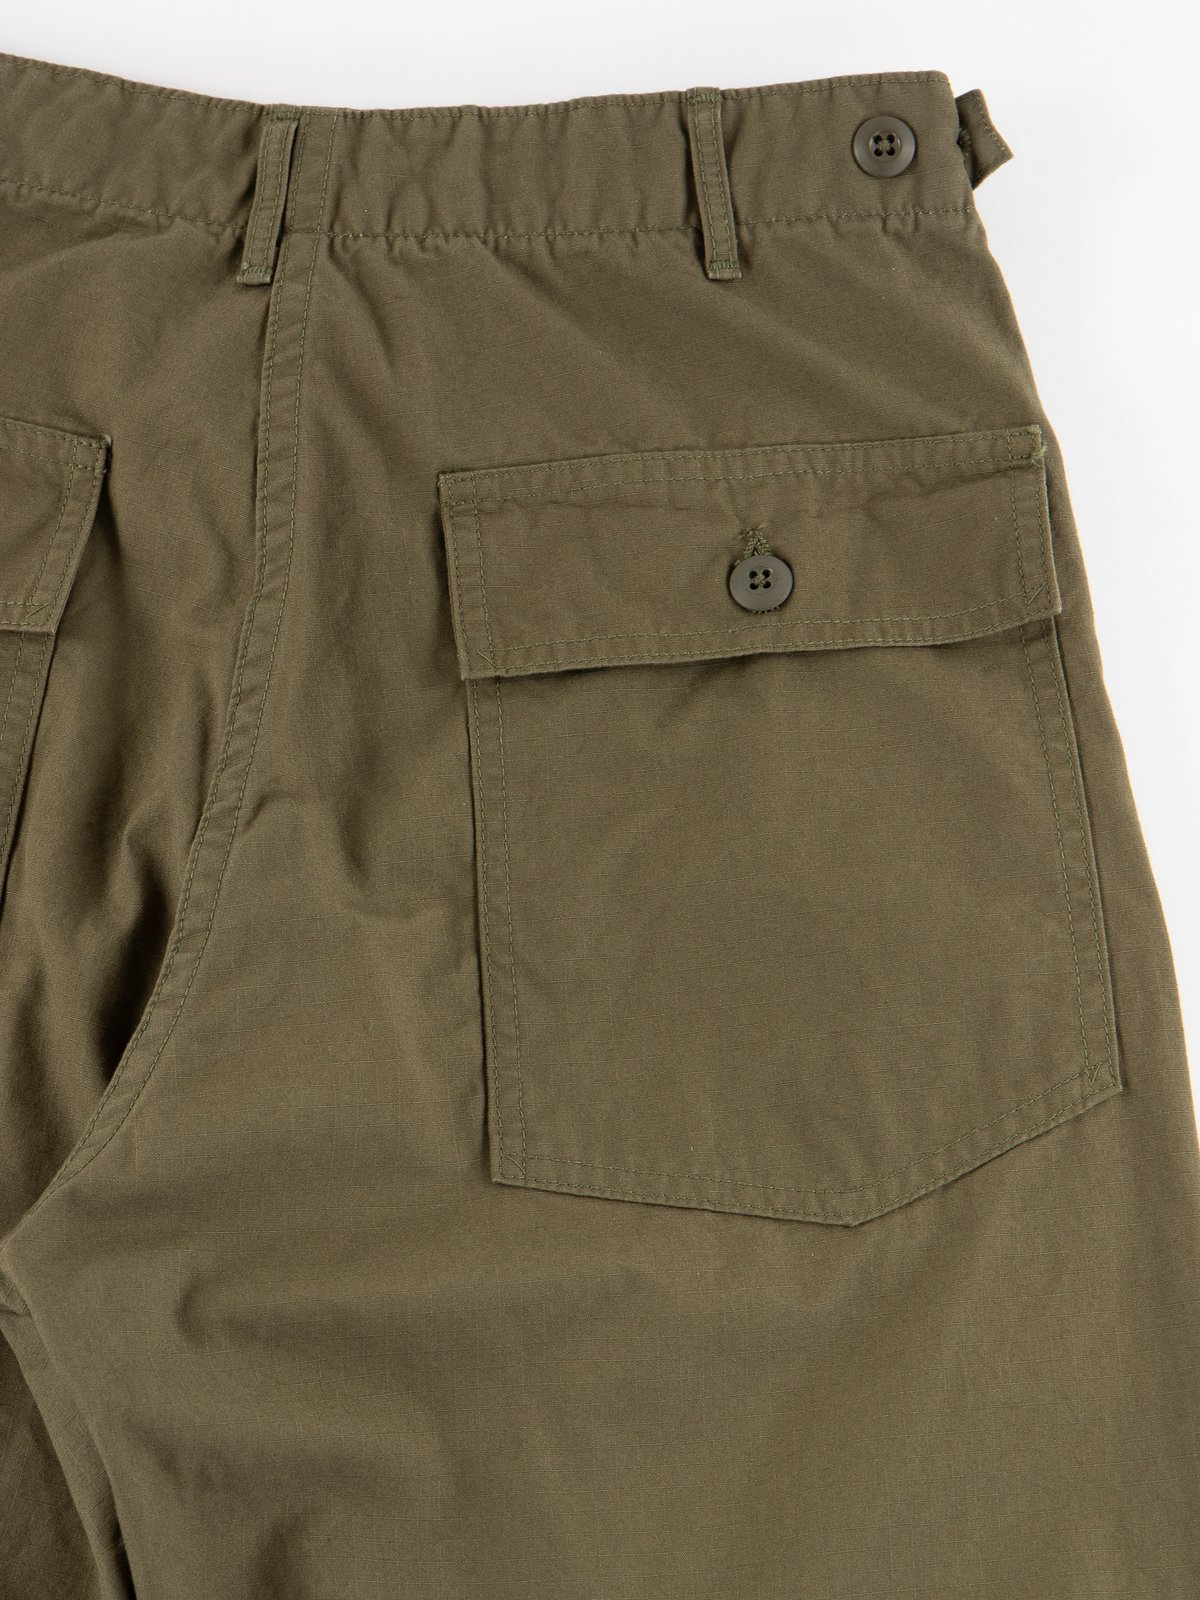 Army Green Ripstop Regular Fit US Army Fatigue Pant - Image 7